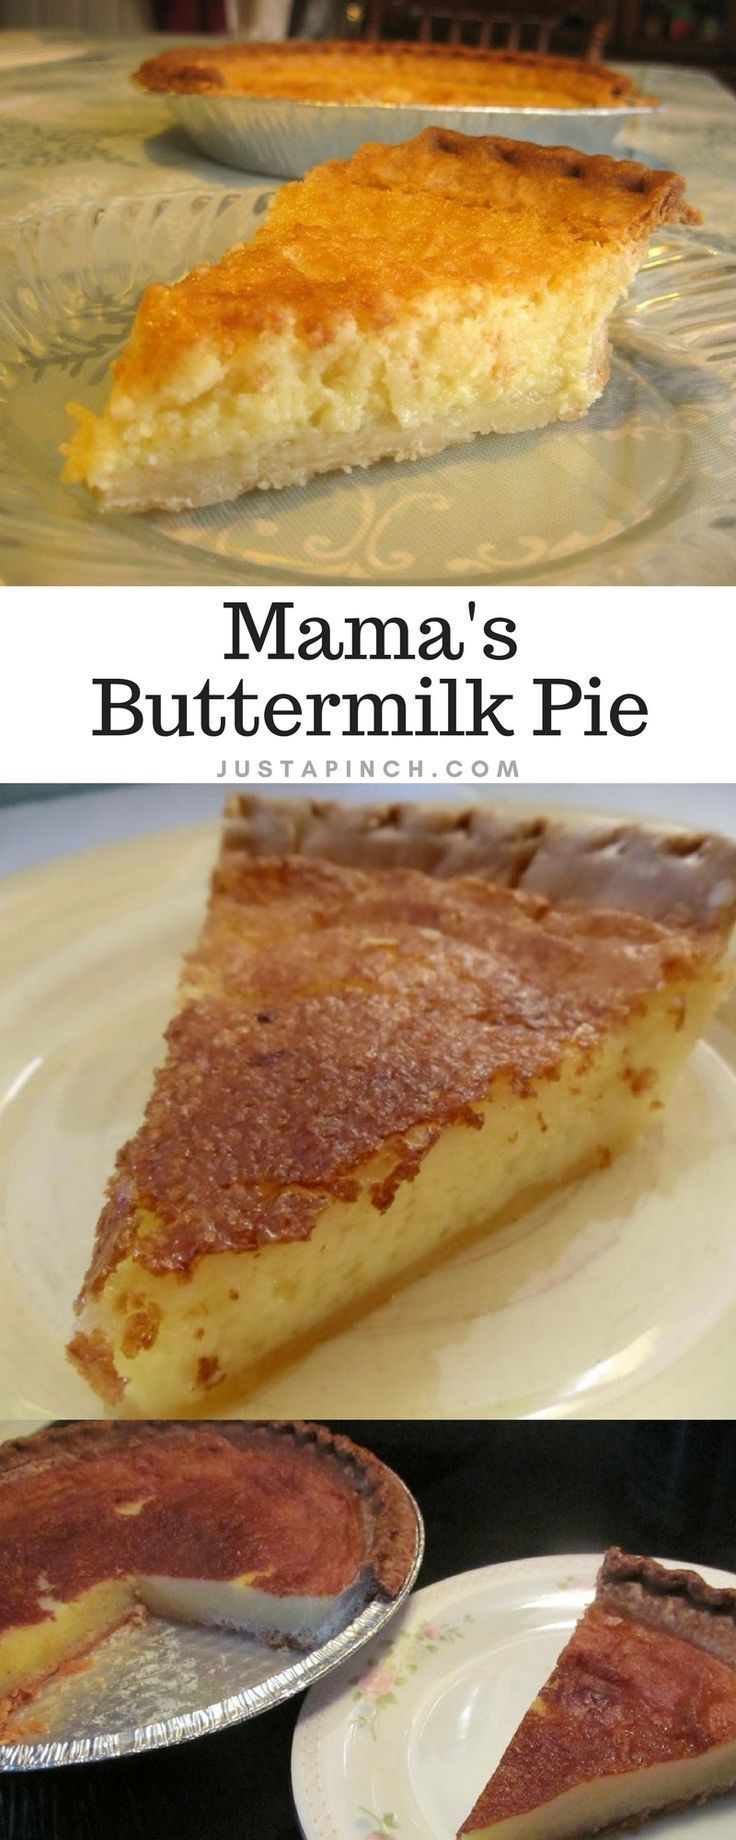 Mama S Buttermilk Pie Recipe Buttermilk Recipes Homemade Buttermilk Desserts